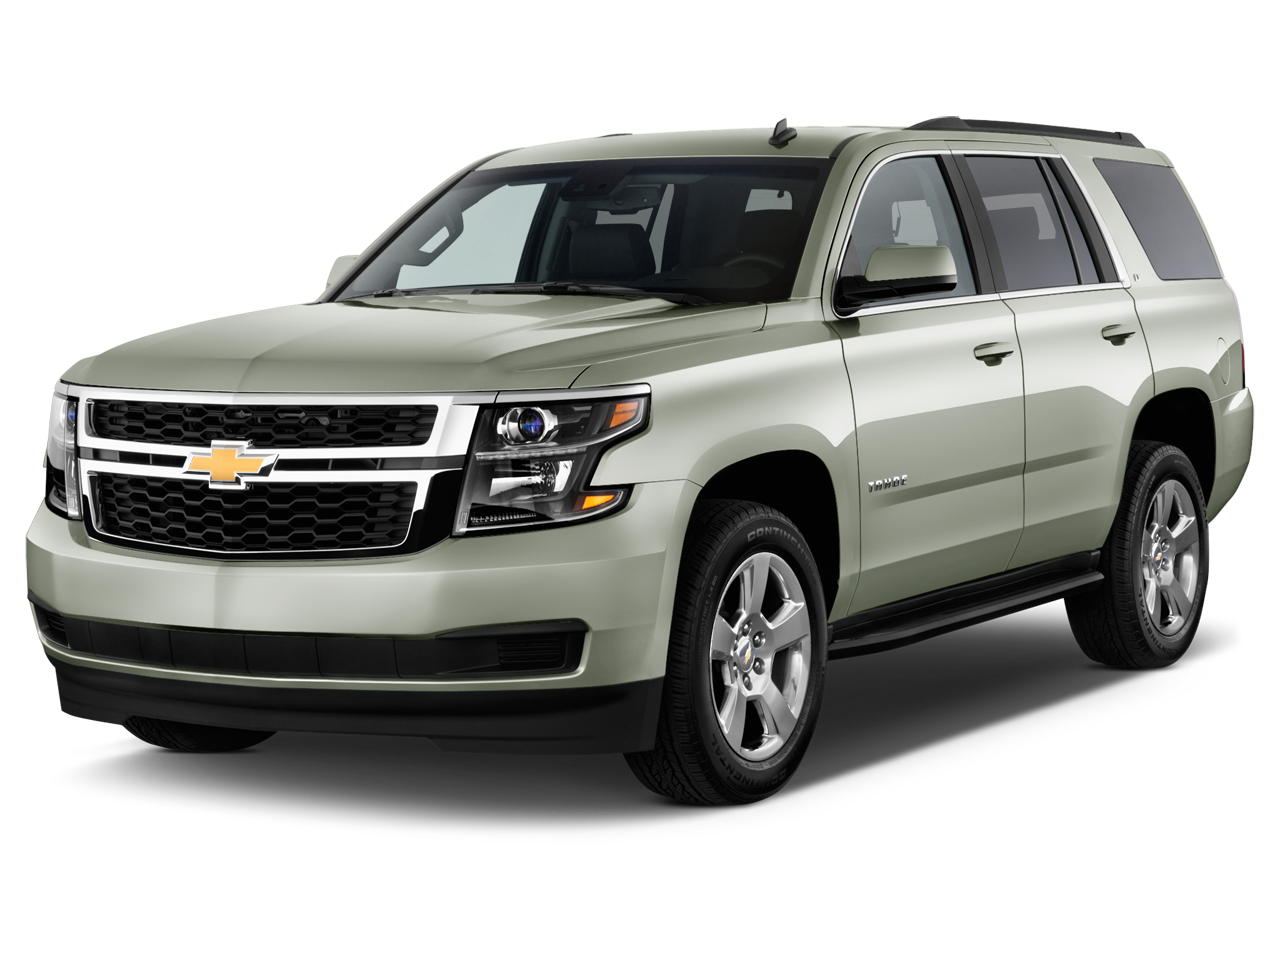 new 2016 chevrolet tahoe ltz near chicago il kingdom chevy. Black Bedroom Furniture Sets. Home Design Ideas